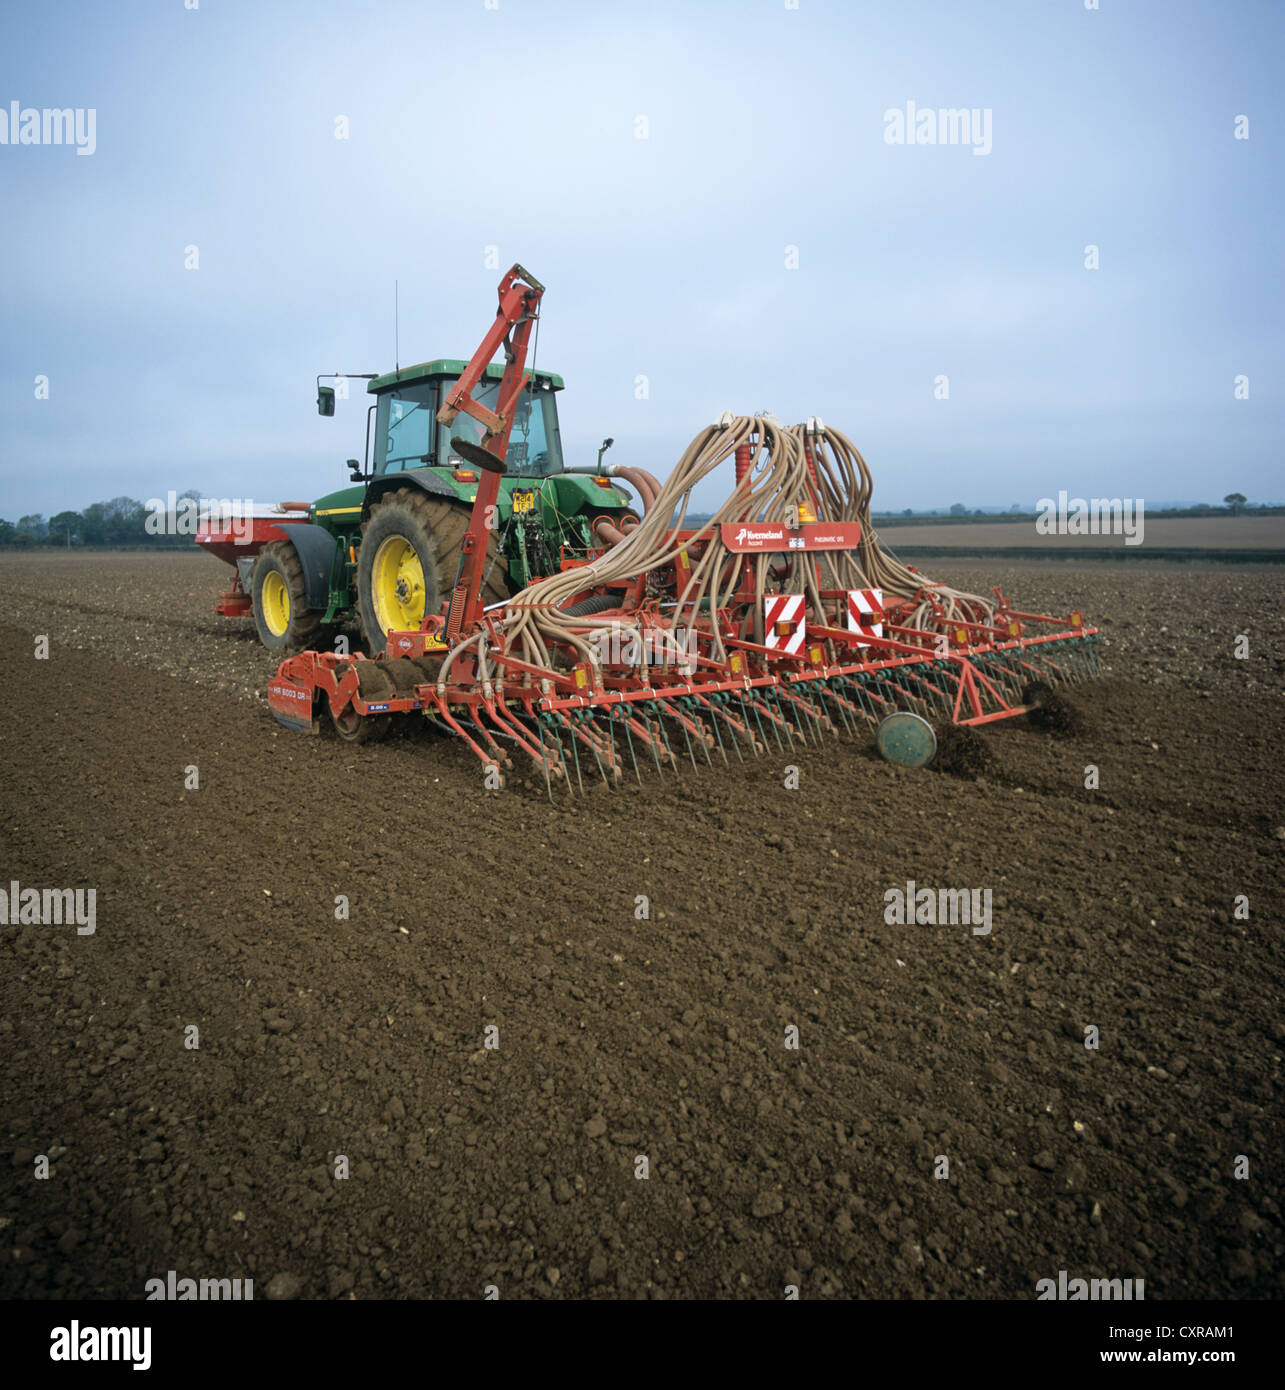 John Deere tractor and pneumatic drill planting a cereal crop - Stock Image